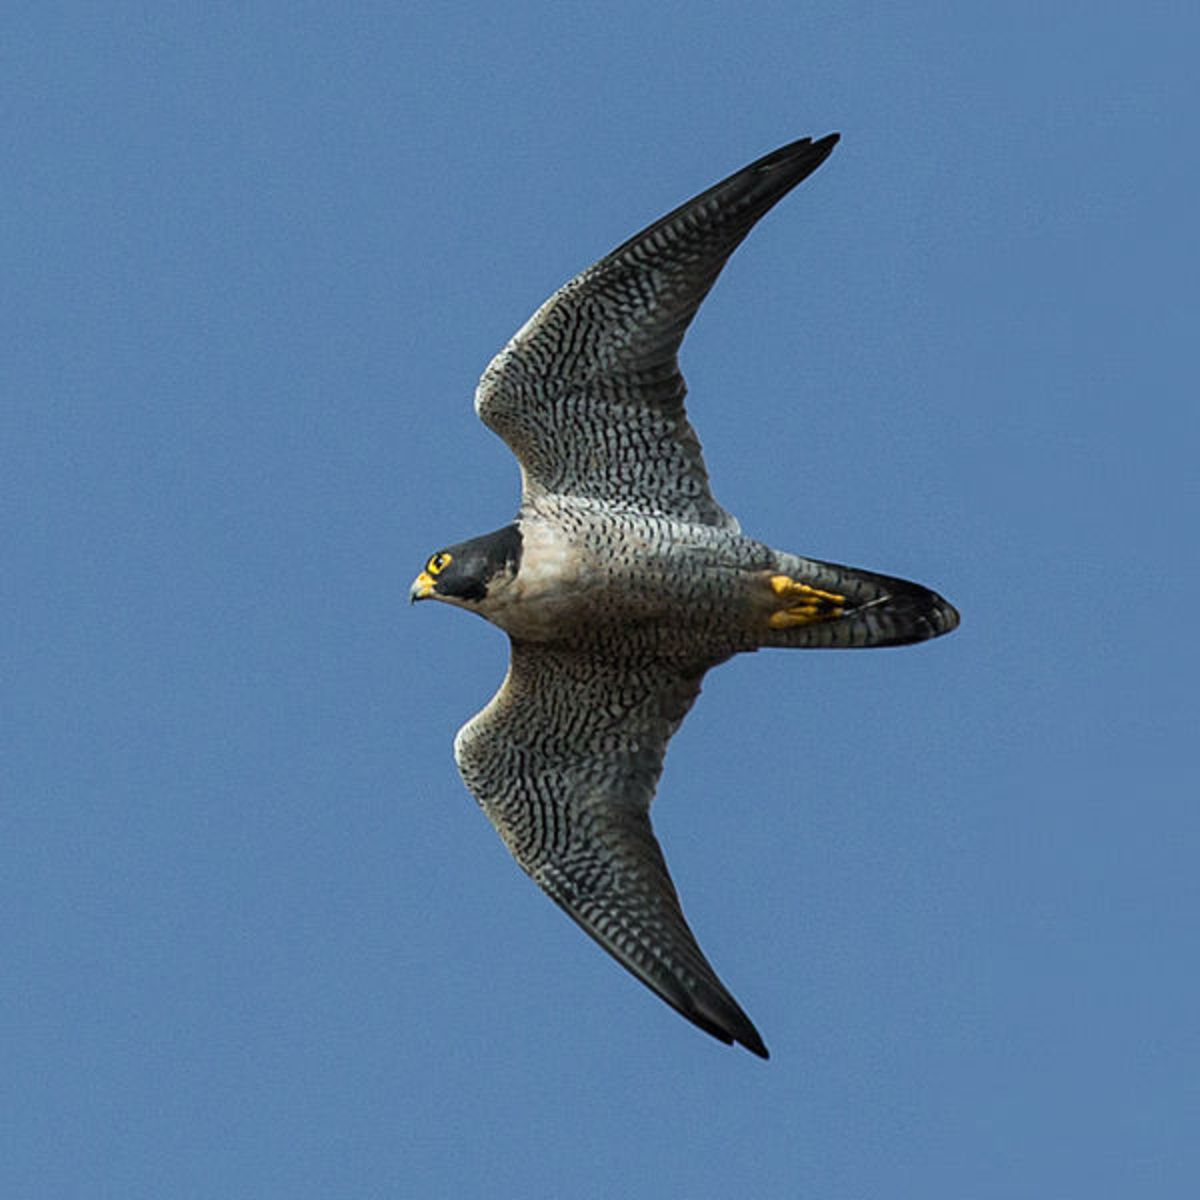 Peregrines are actually rather sluggish in level flight, especially compared to pigeons and ducks, hence why the stoop evolved into an effective hunting strategy.